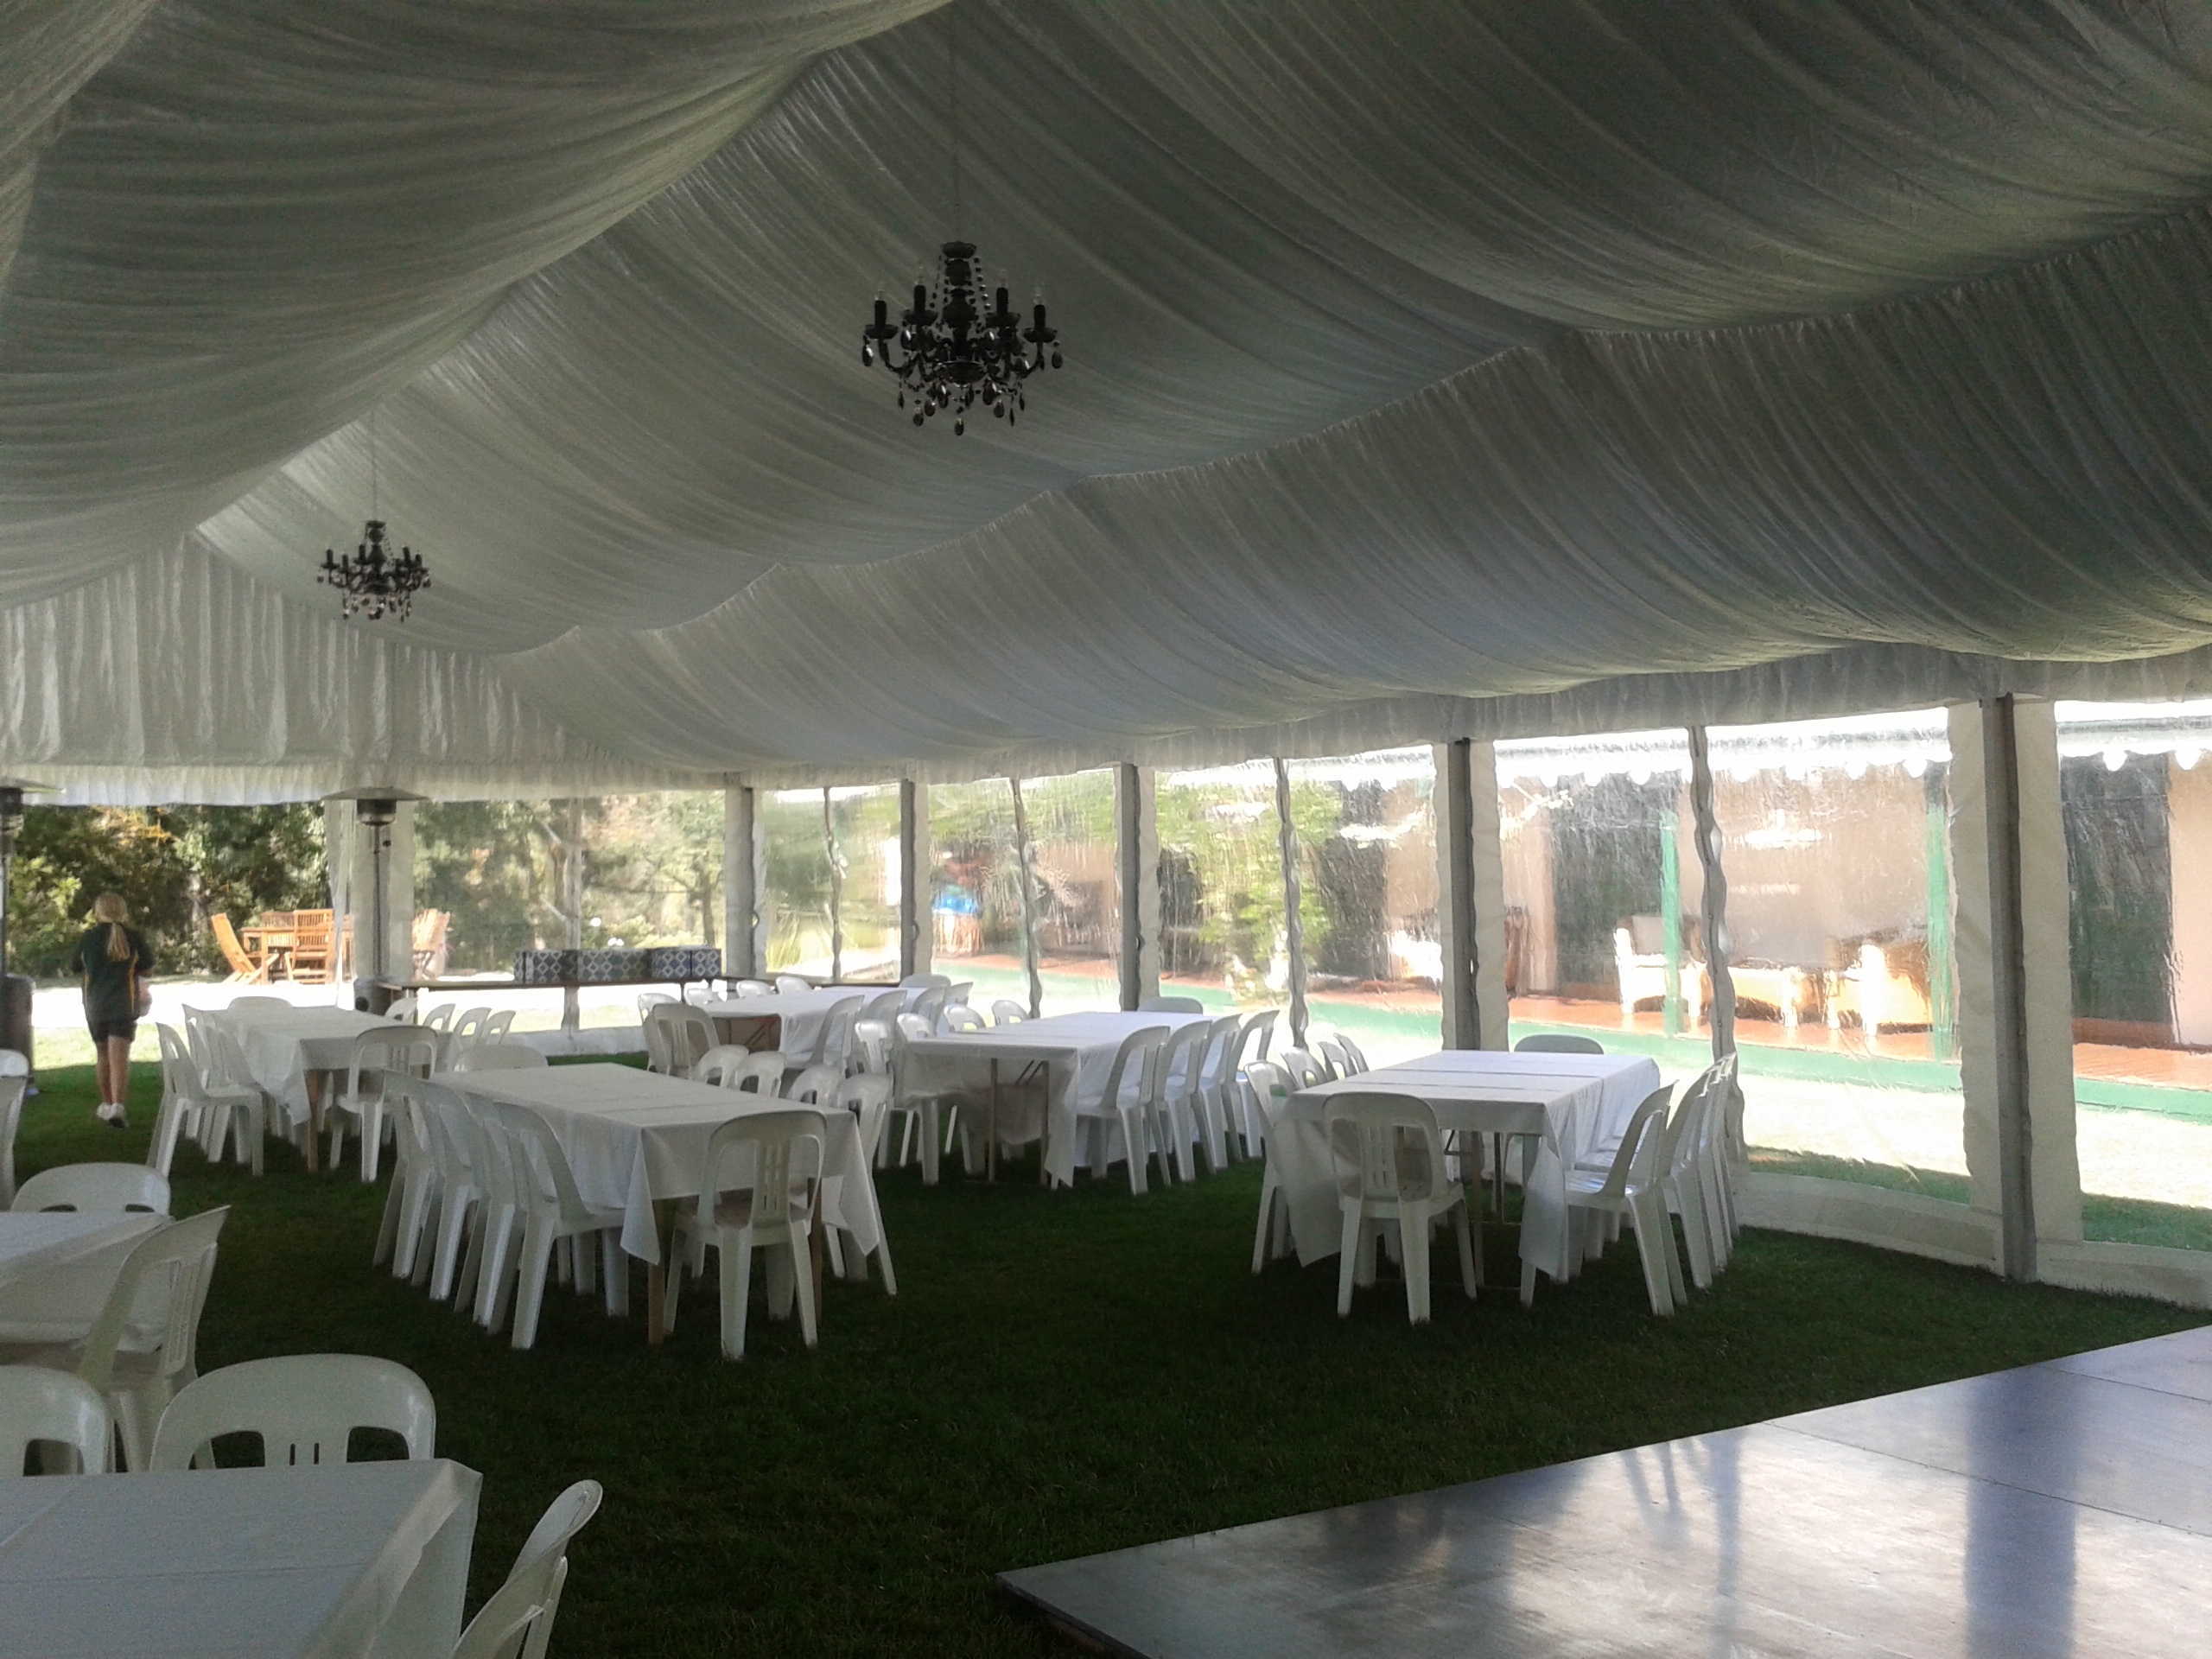 9m x 18m, chandeliers,silk,dance floor and clear walls